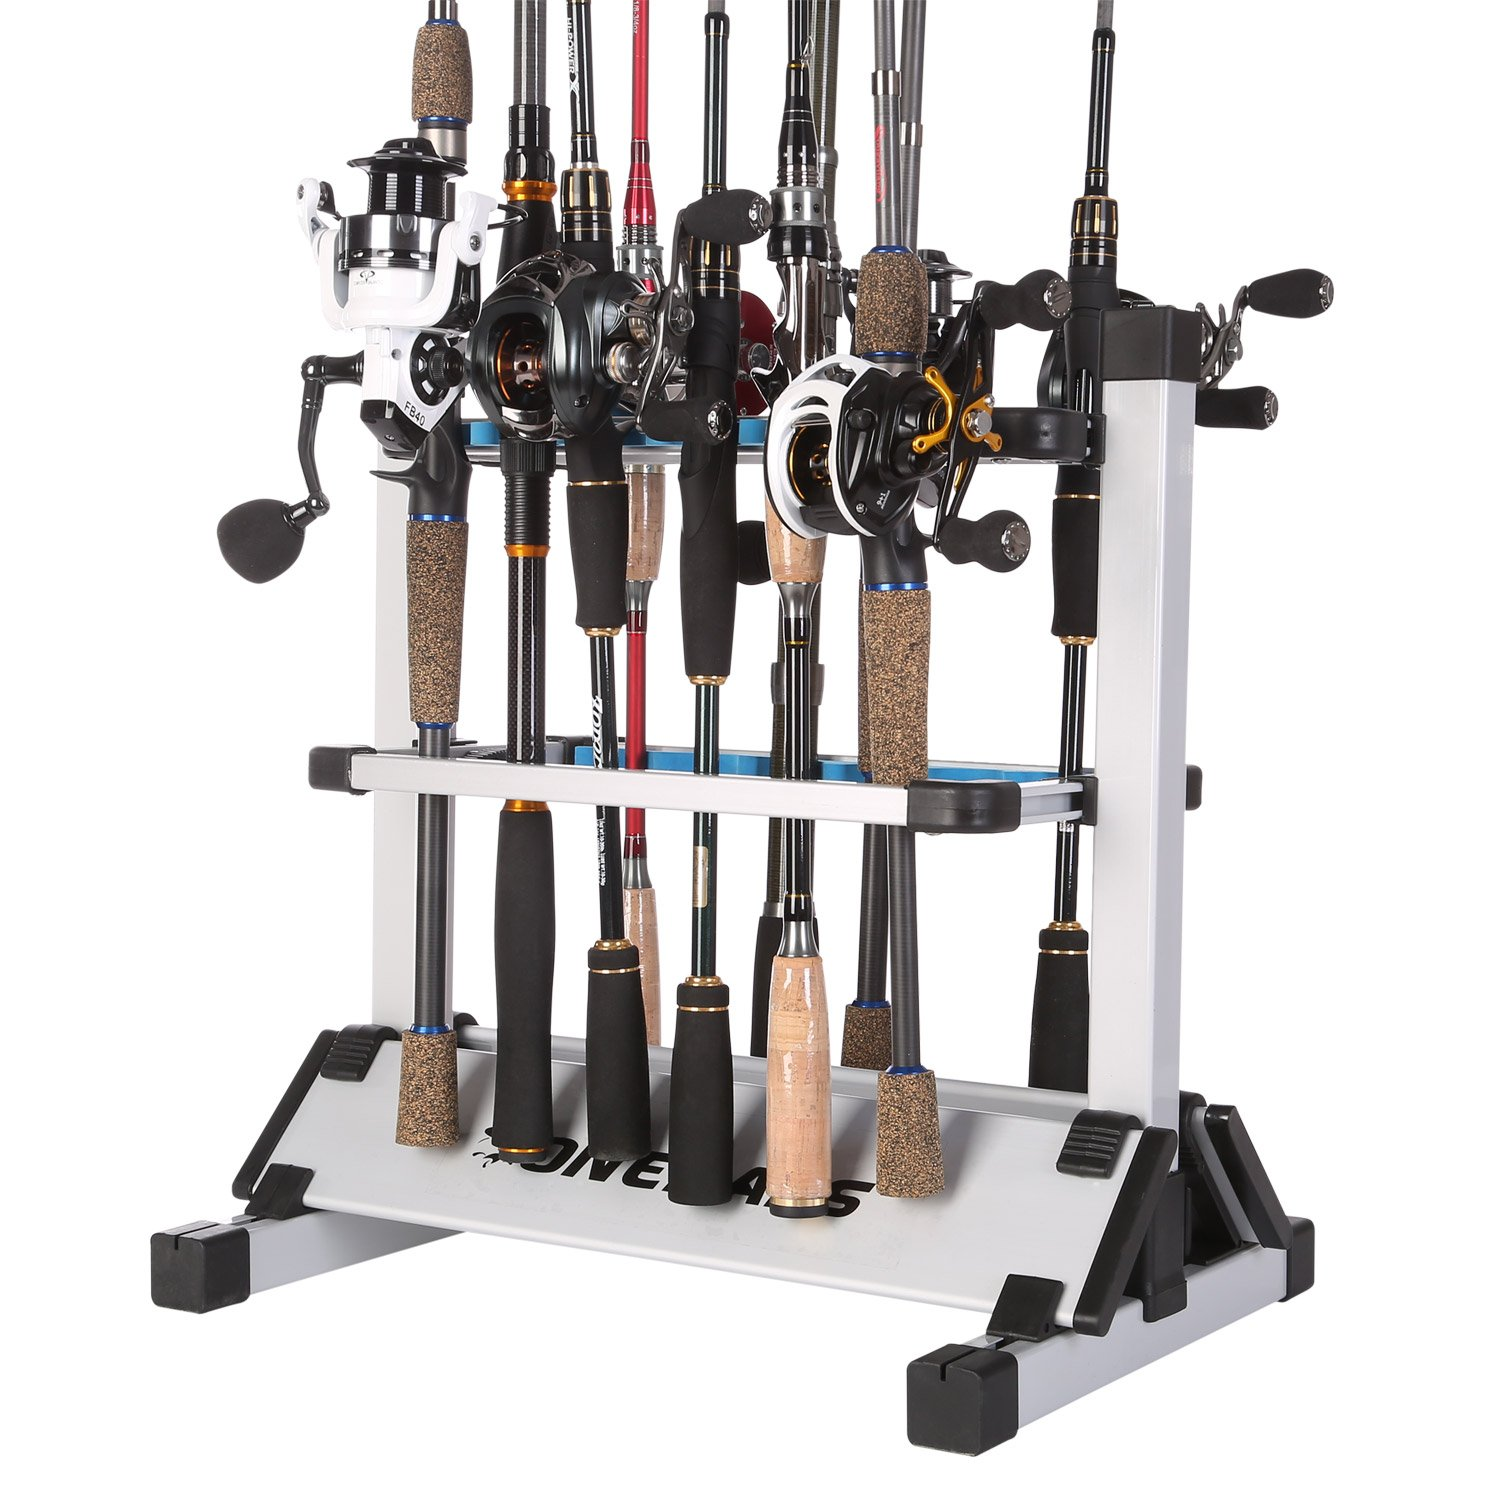 One Bass Fishing Rod Rack Metal Aluminum Alloy Fishing Rod Holder Portable Rod Organizer for All Type Fishing Pole, Hold Up to 12 Rods